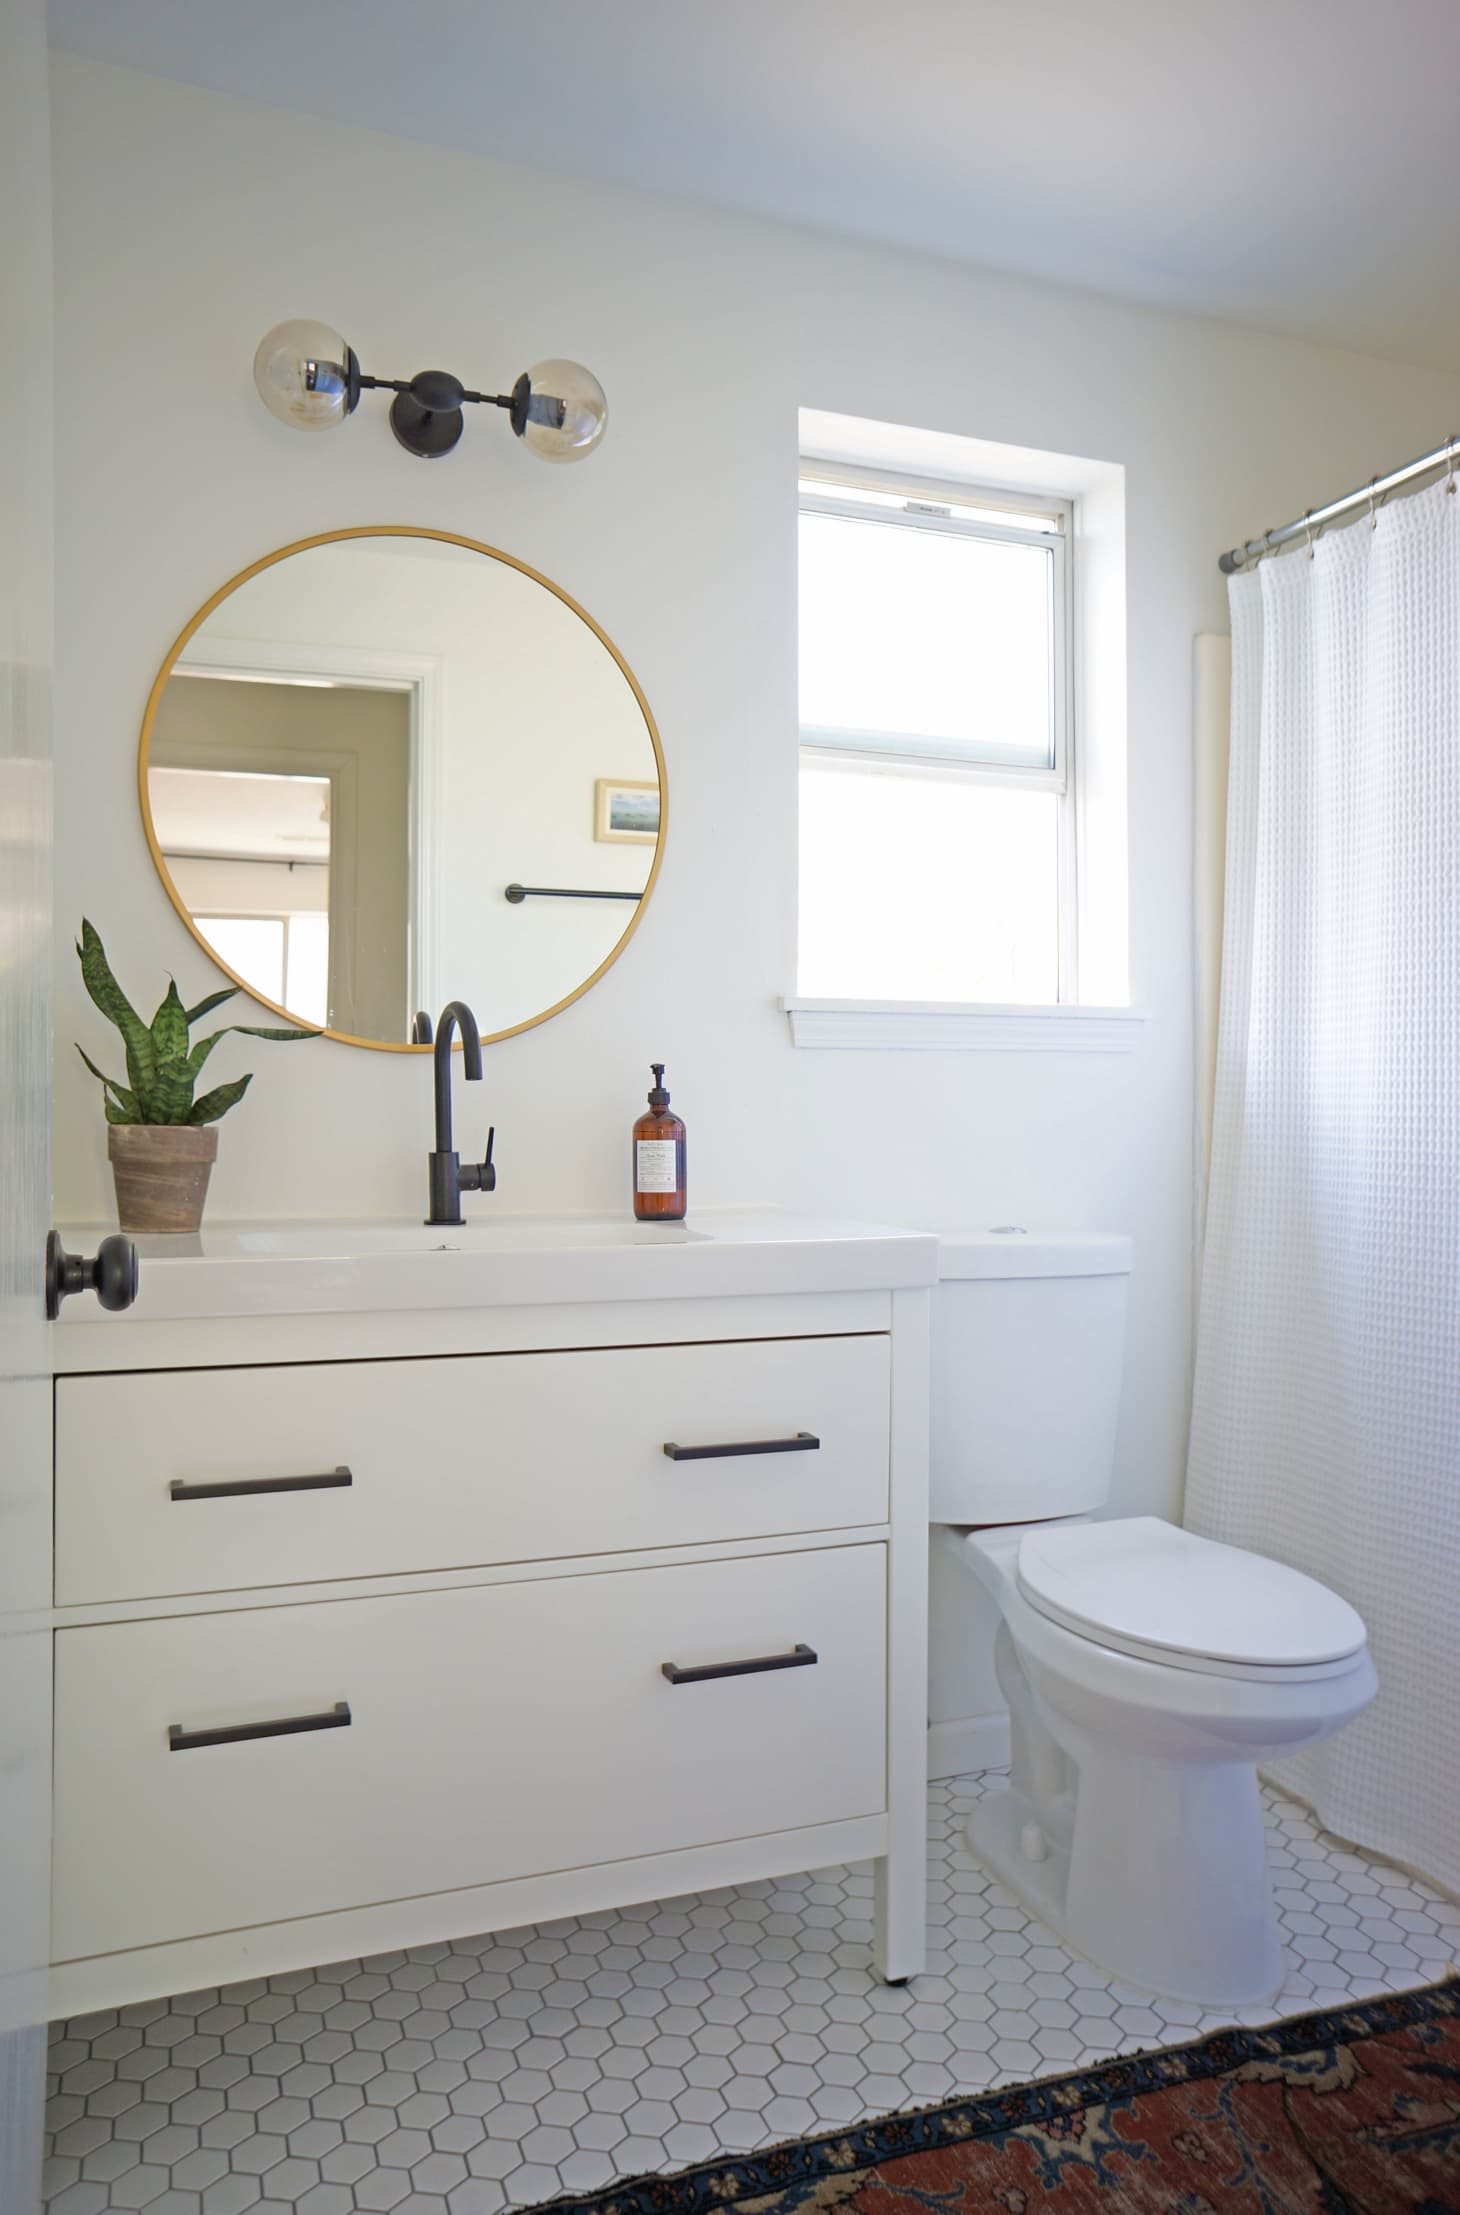 online retailer 2ce58 f1dc8 Cheap Bathroom Vanity Sources | Apartment Therapy